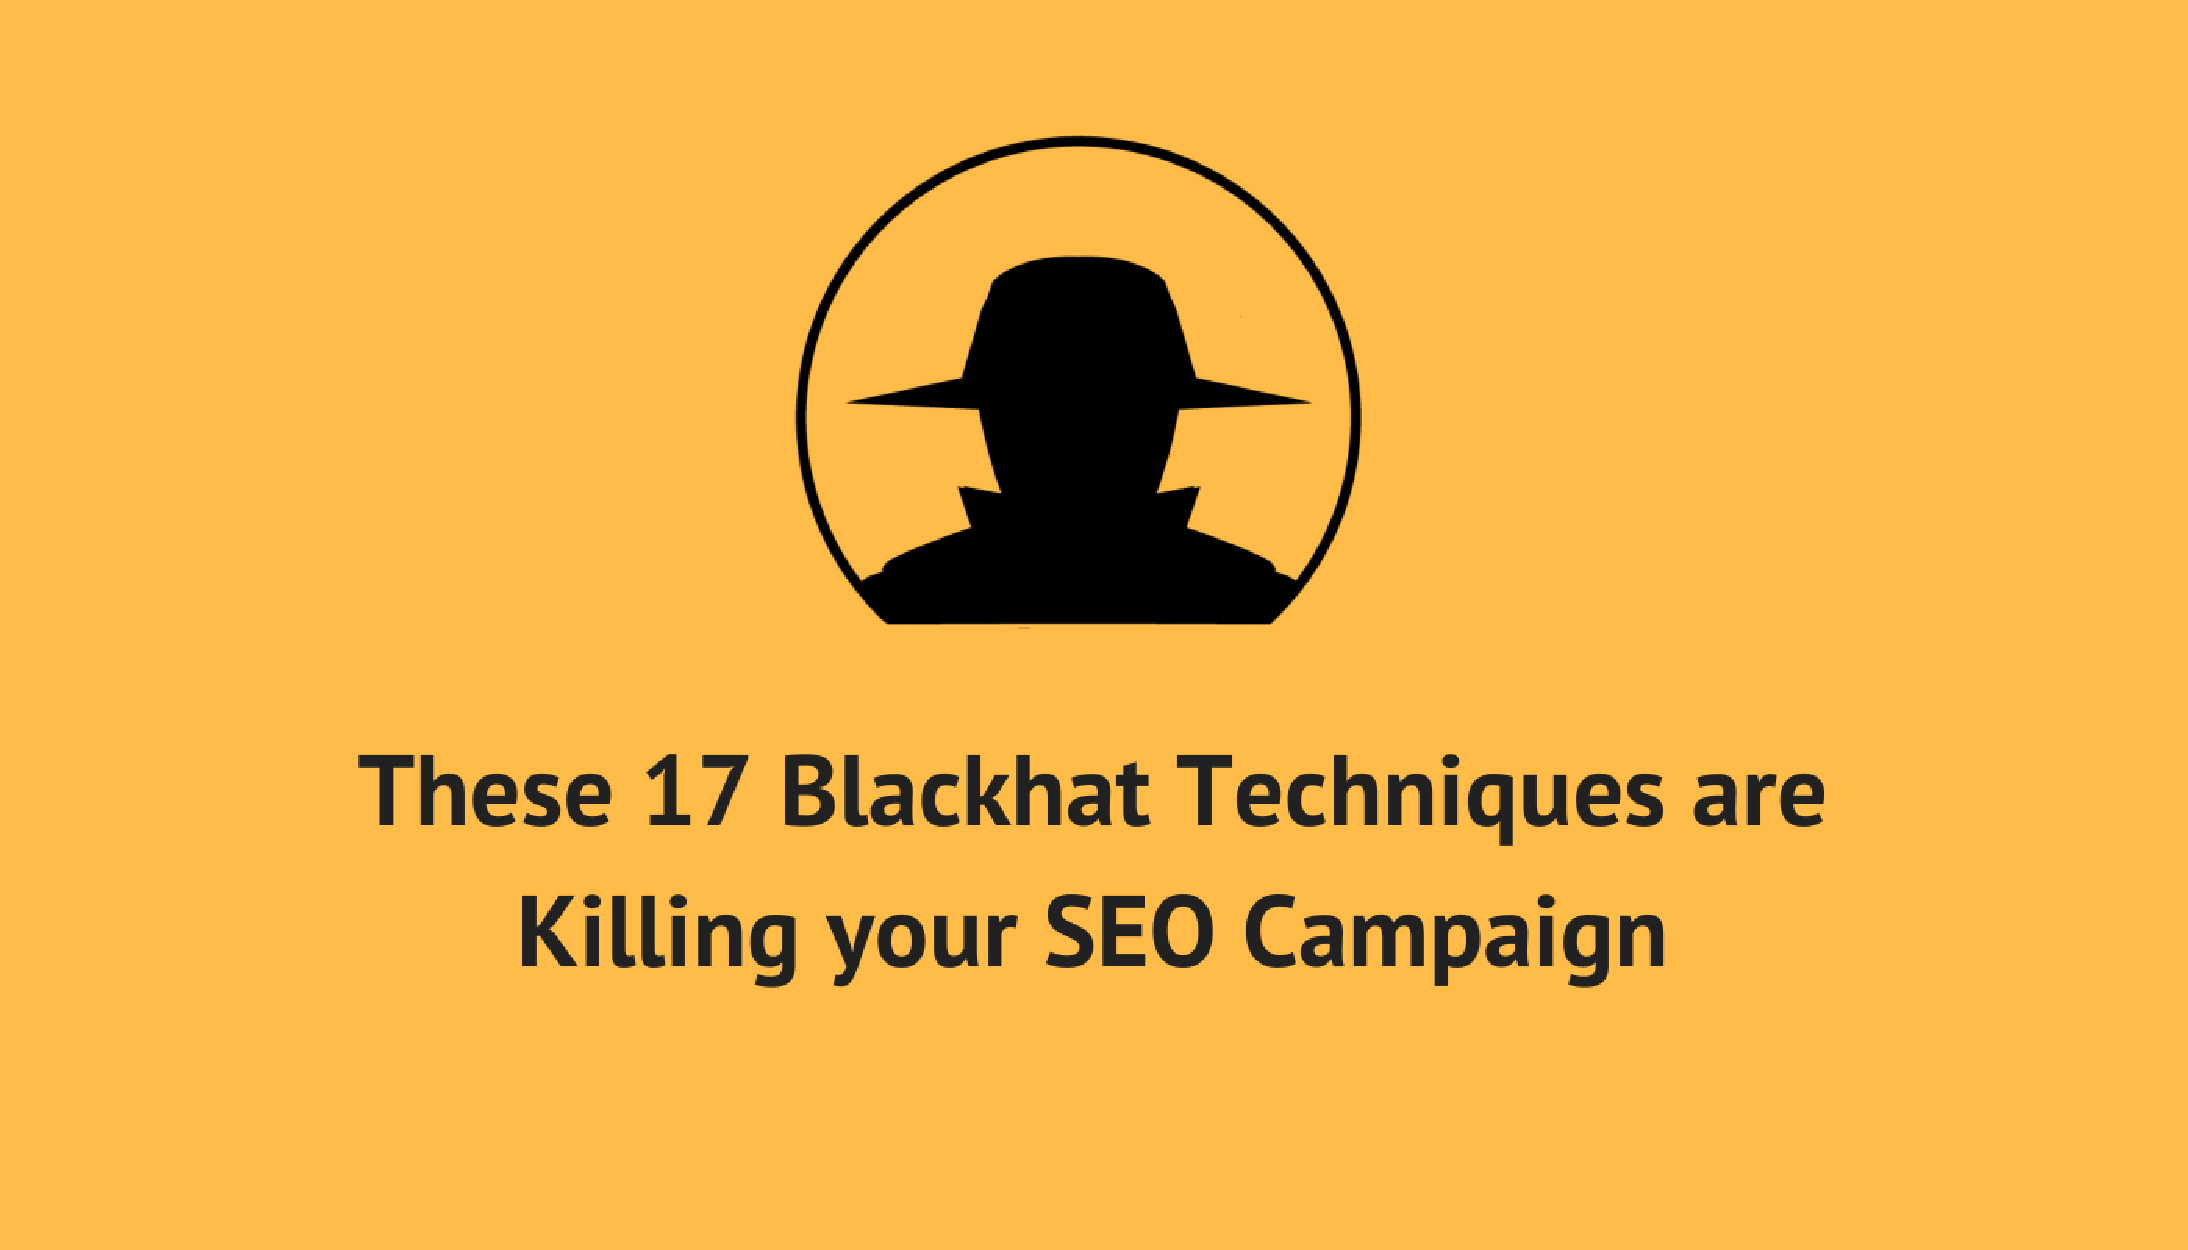 blackhat seo techniques killing an SEO campaign